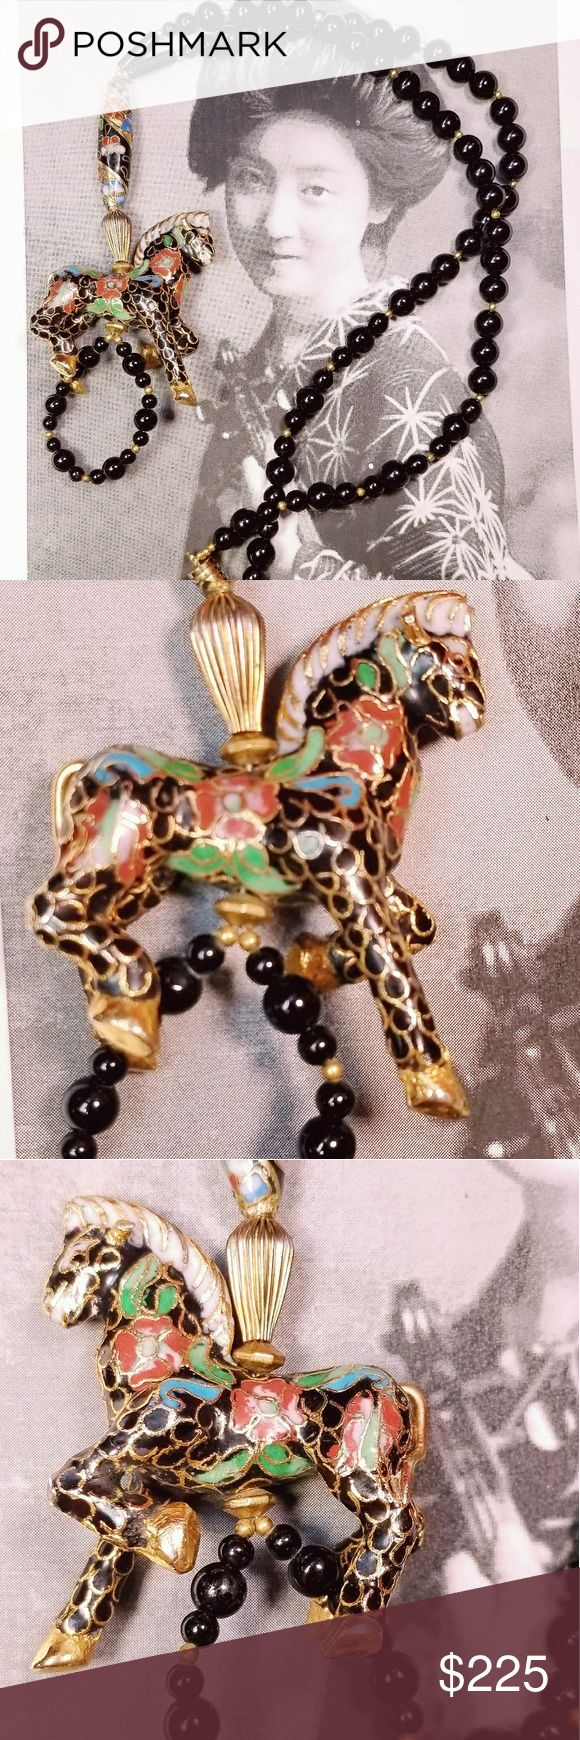 "Vintage cloisonne horse and black onyx necklace Vintage figural Chinese export Black onyx and gold tone beaded necklace adorned with a cloisonne bead and horse. Necklace measures around 22"" with 4.5"" center drop. Horse measures 2.25"" tall and 2"" wide. Screw clasp is sturdy and in good working order. Excellent vintage condition. Reasonable offers welcome and accepted. Add to a bundle and I'll offer you a great deal ❤ Vintage Jewelry Necklaces"